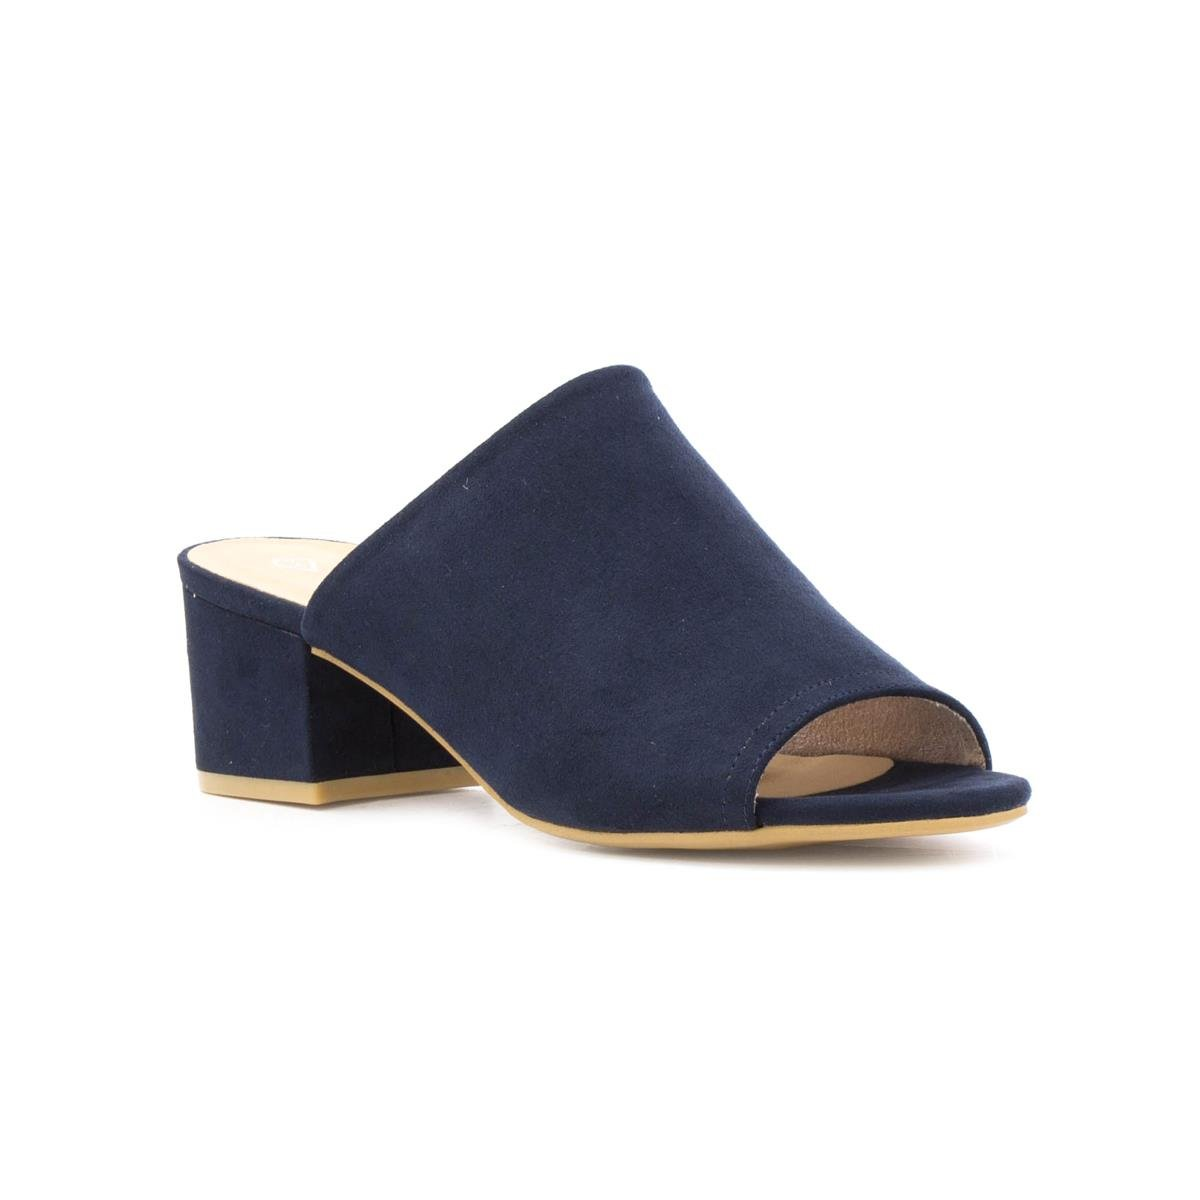 47df487f59e7 Lilley Womens Navy Faux Suede Sleeve Mule - Size 5 UK - Blue  Amazon.co.uk   Shoes   Bags